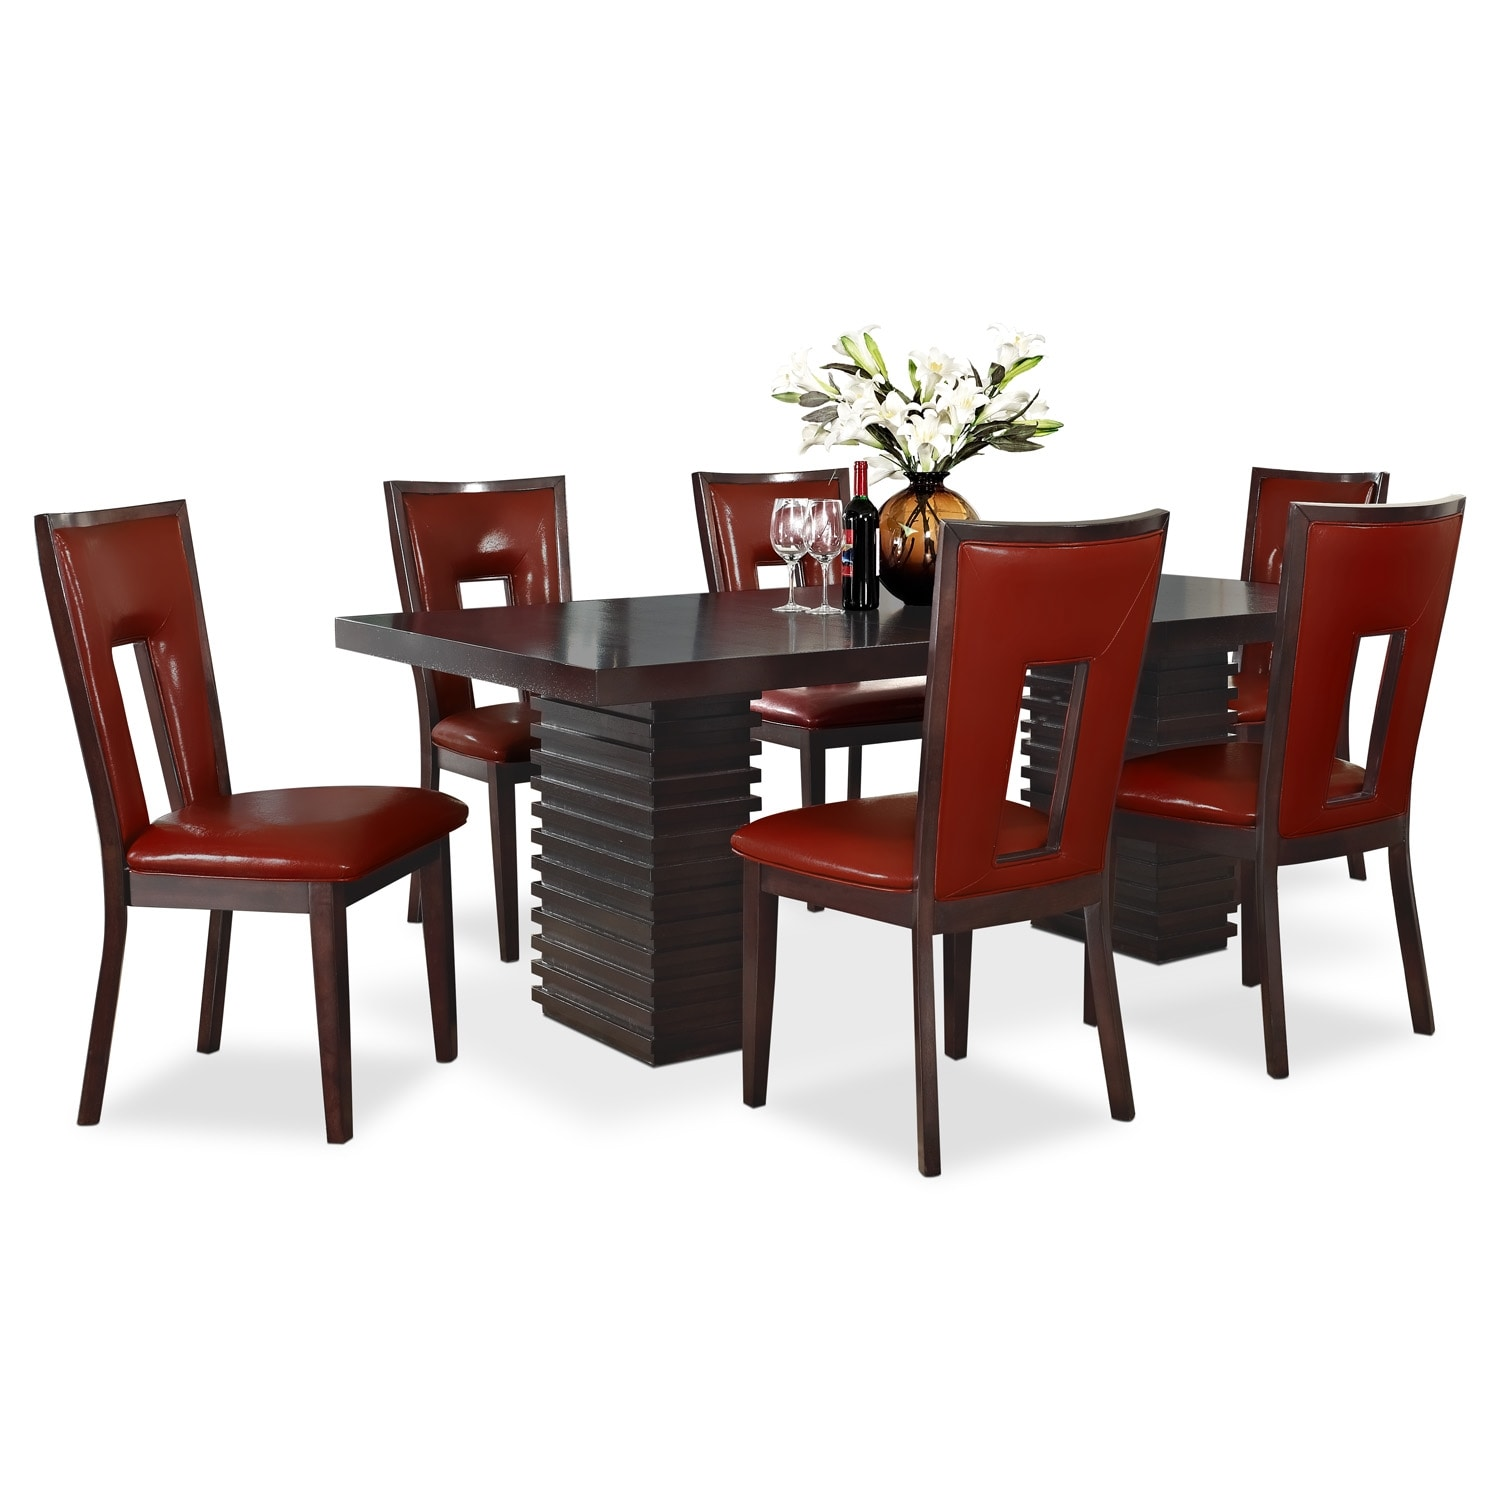 Dining Room Furniture - Paragon Madera 7 Pc. Dining Room